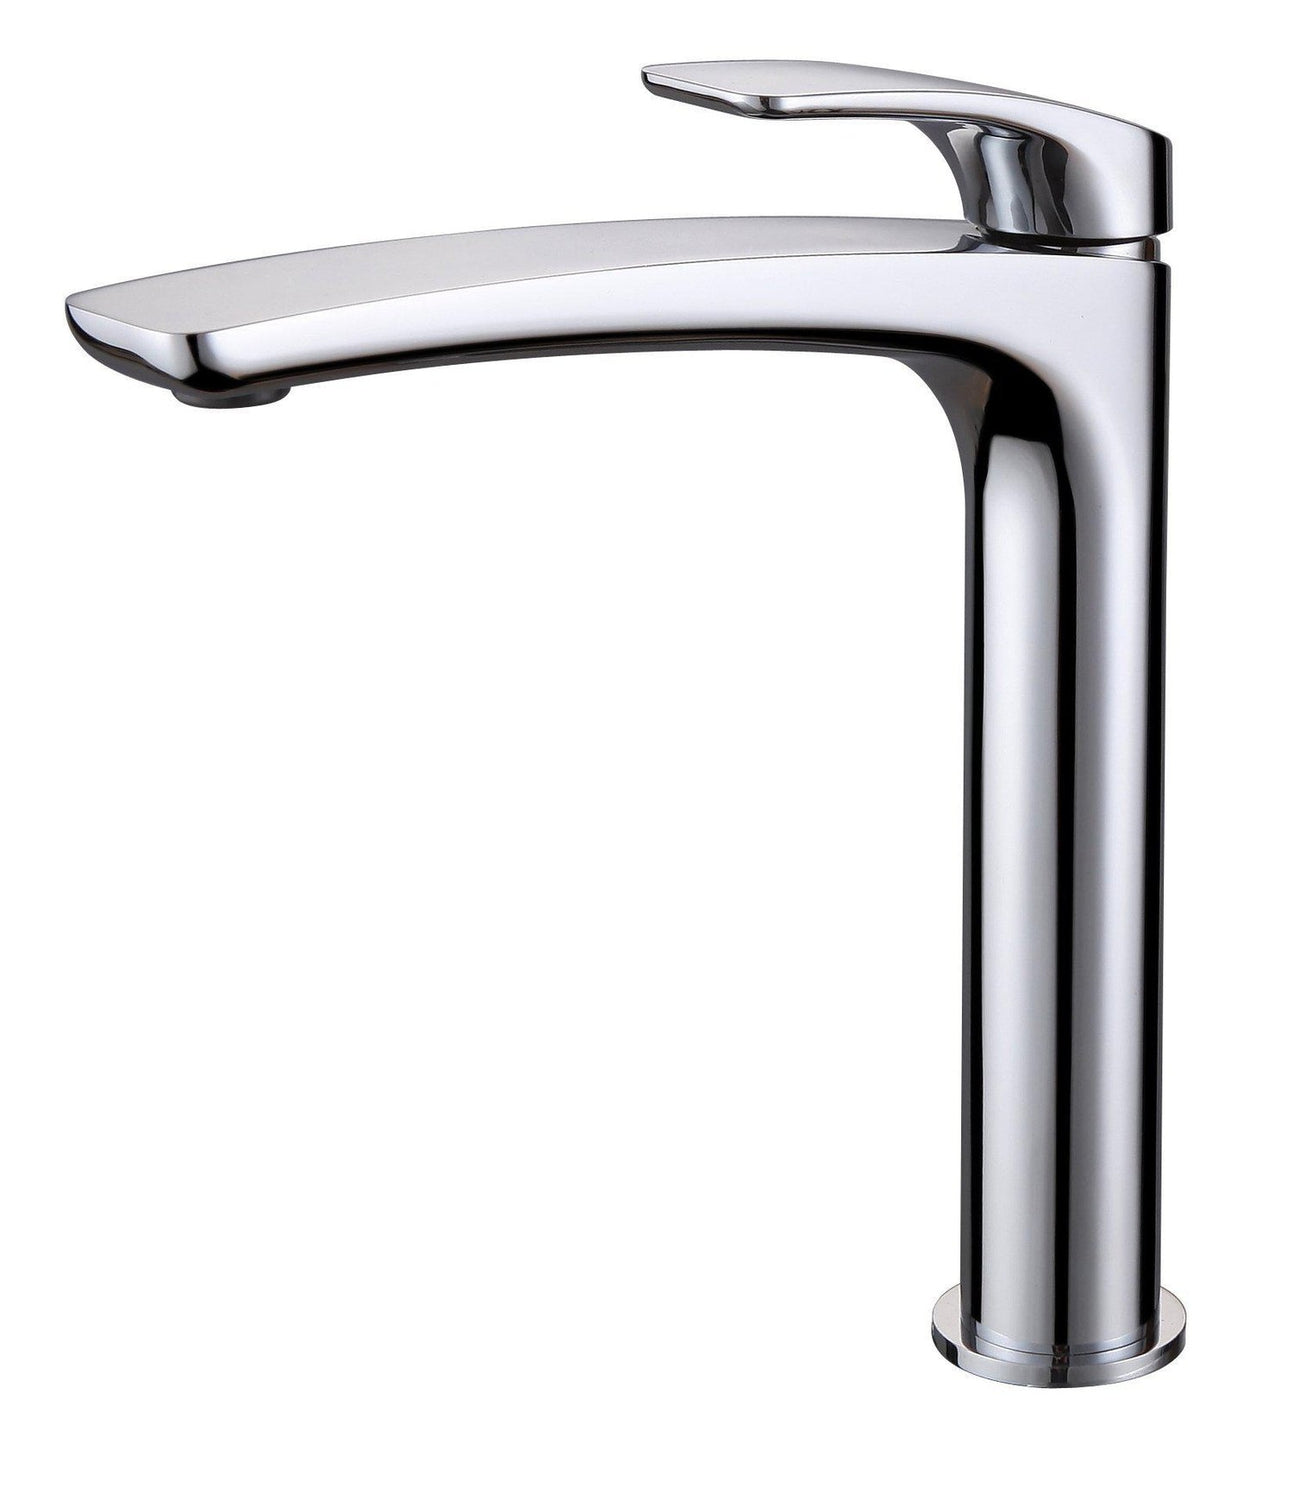 Allure Bathrooms | Allure Bathrooms URBAN Extended Basin Mixer